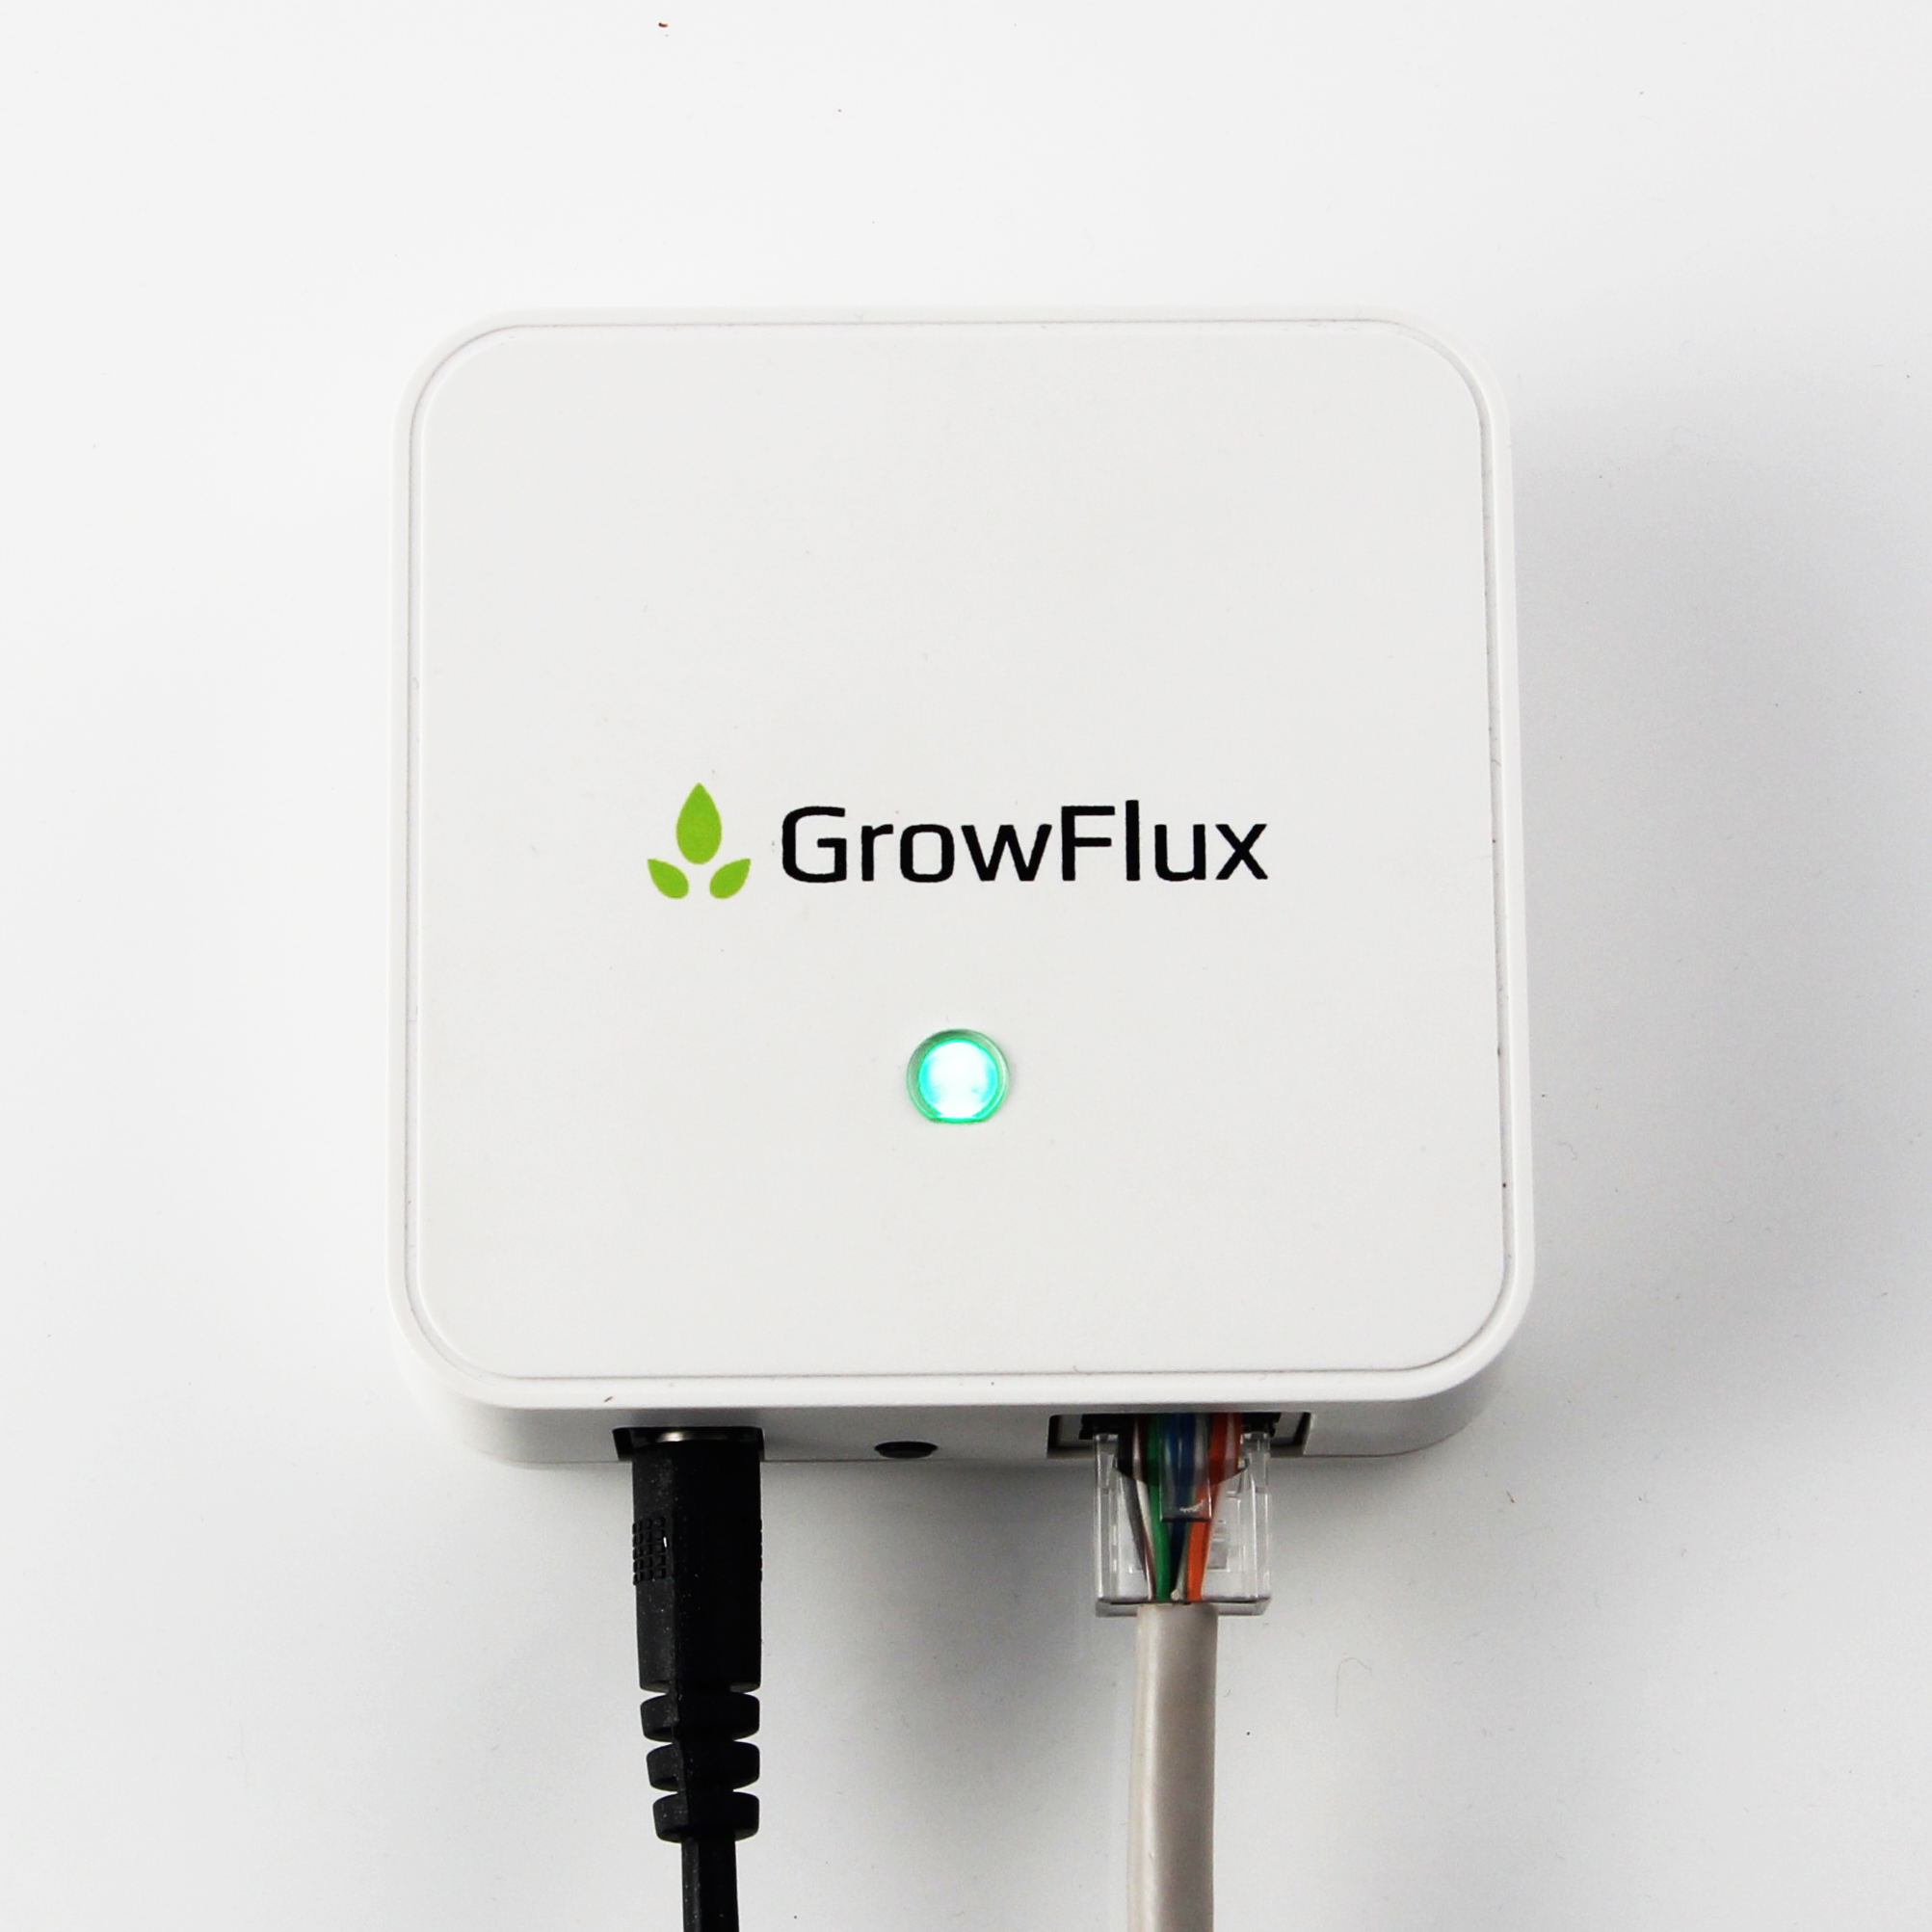 GrowFlux Wireless Access Point